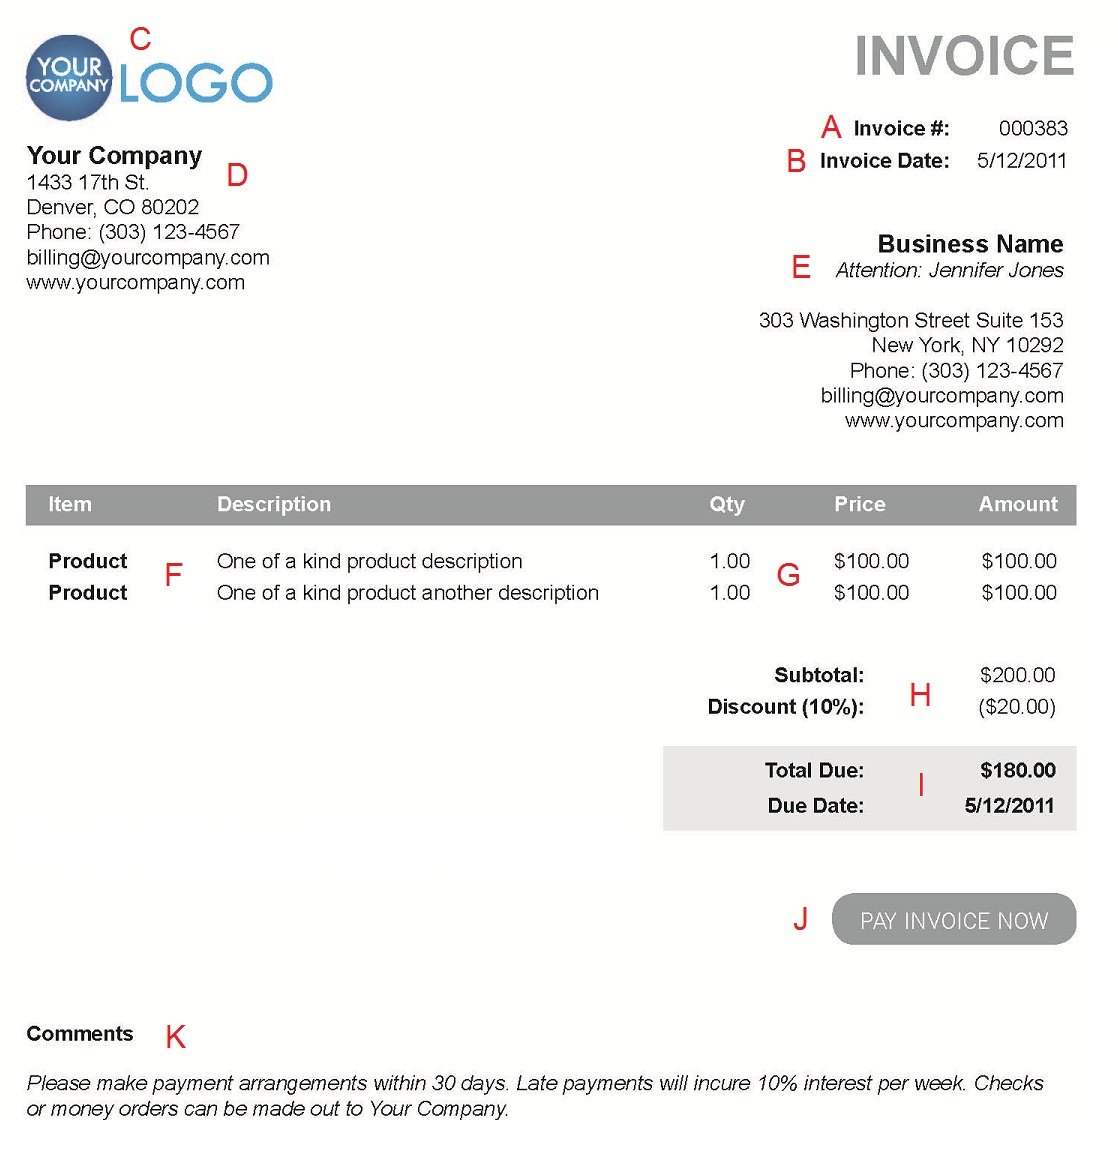 Opposenewapstandardsus  Pleasant The  Different Sections Of An Electronic Payment Invoice With Fair A  With Lovely Blank Printable Invoices Also Invoice Database Design In Addition Porforma Invoice And Commercial Invoice Word Template As Well As Invoices Free Templates Additionally Android Invoicing App From Paysimplecom With Opposenewapstandardsus  Fair The  Different Sections Of An Electronic Payment Invoice With Lovely A  And Pleasant Blank Printable Invoices Also Invoice Database Design In Addition Porforma Invoice From Paysimplecom